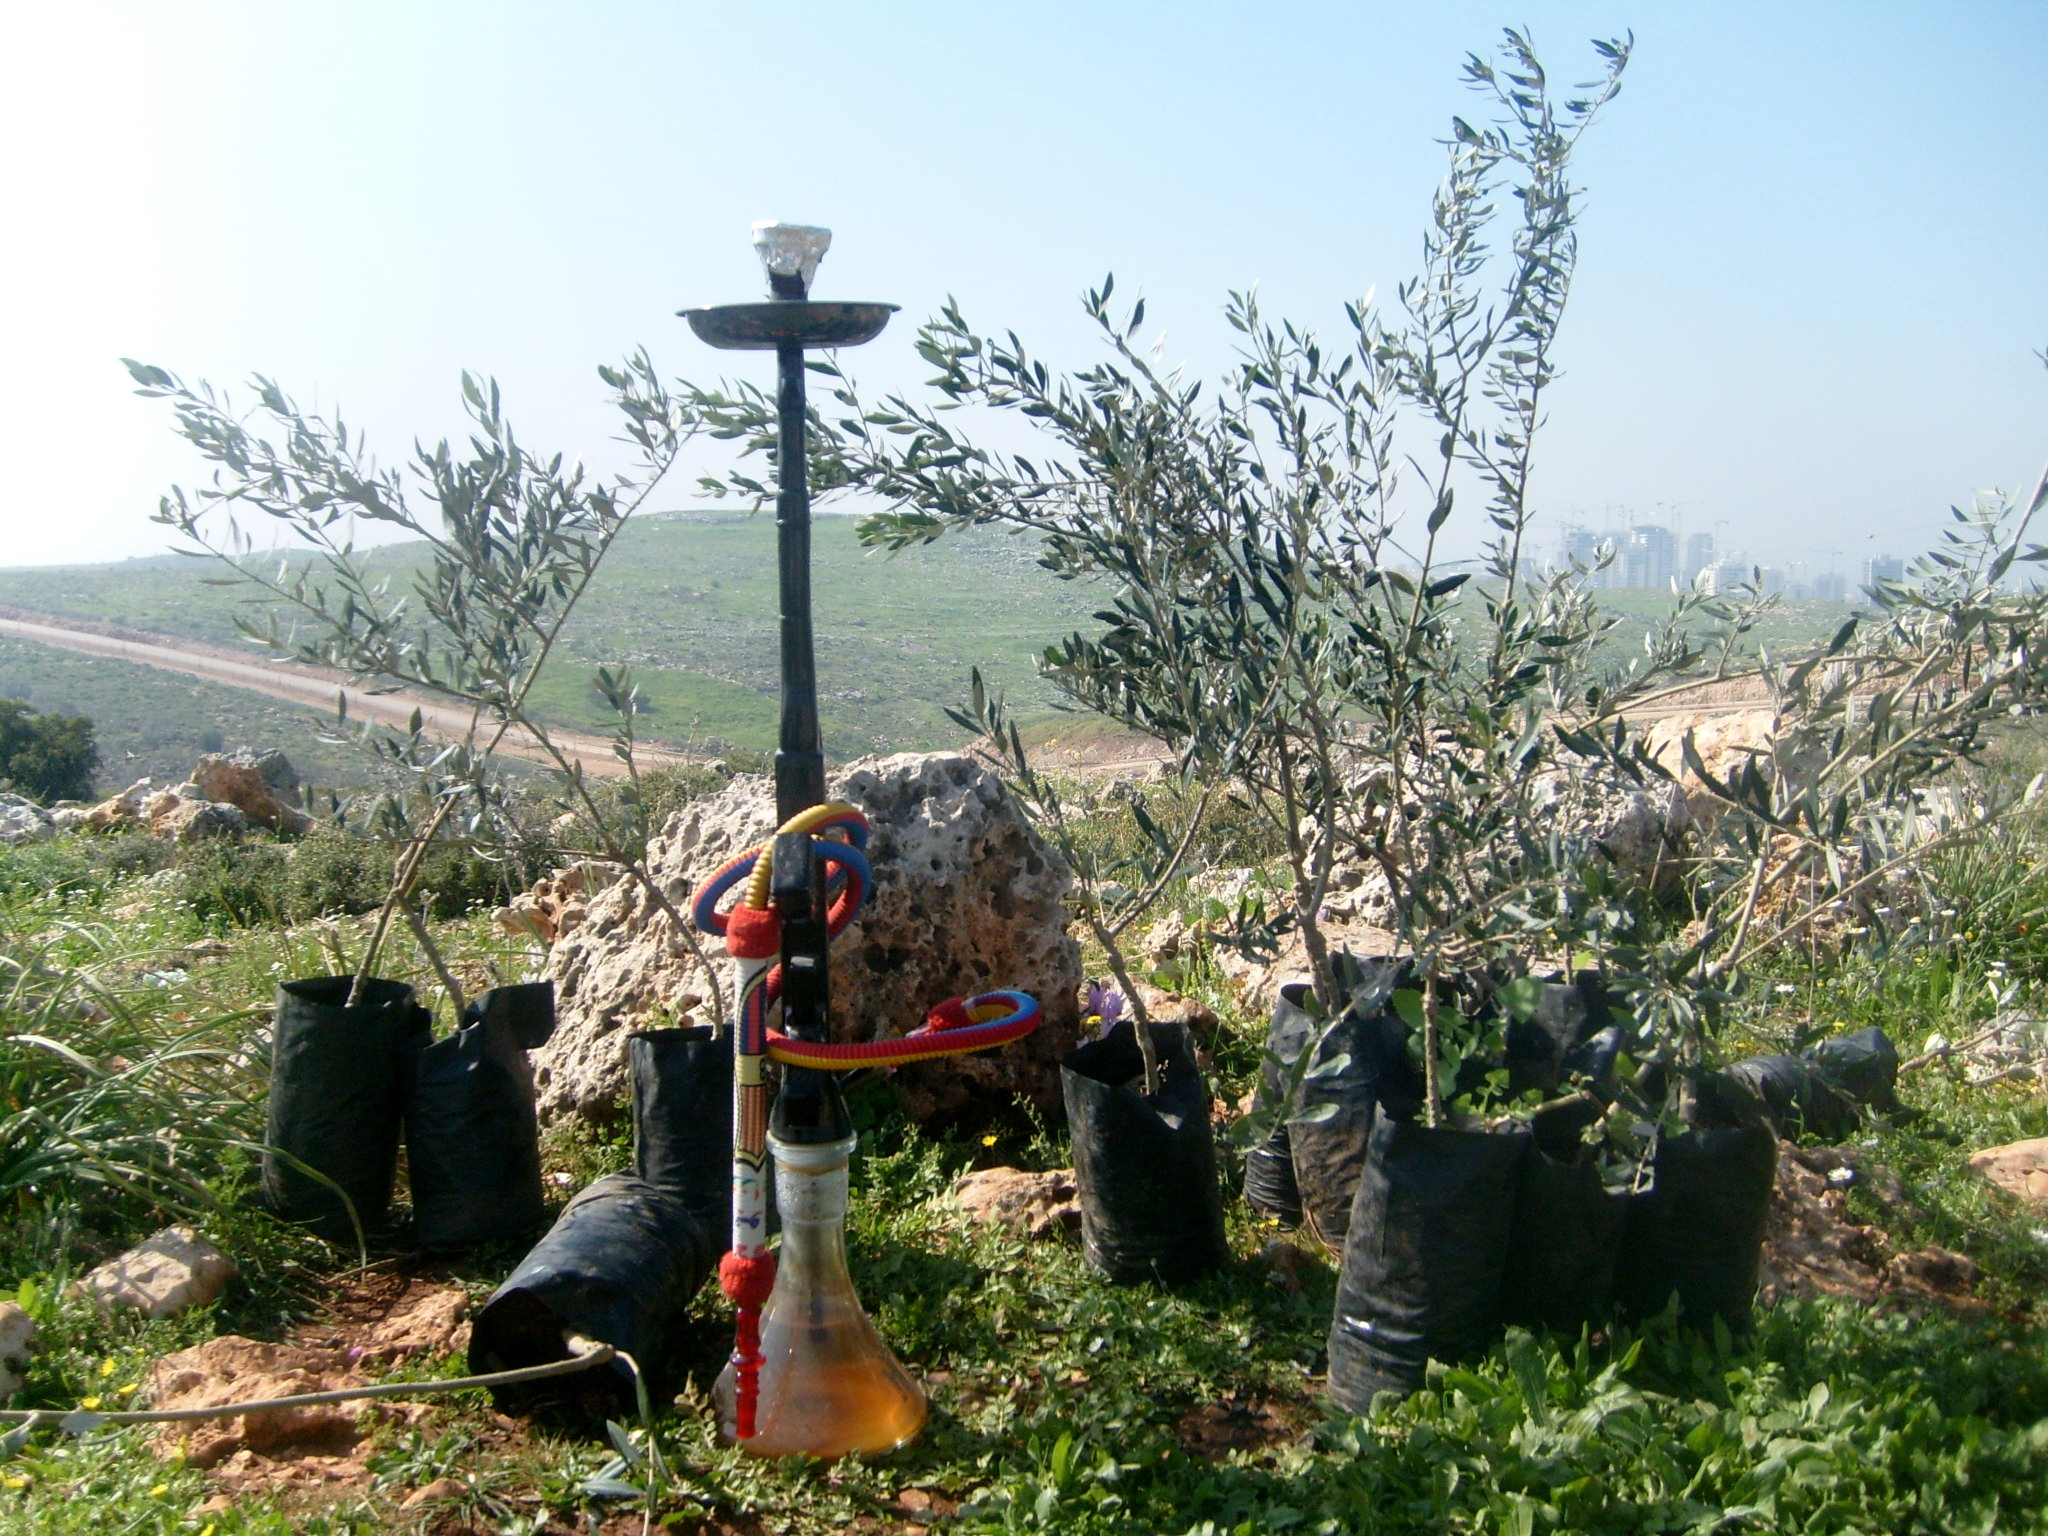 a hubbly bubbly and an olive tree sapling, on the hills of the West Bank